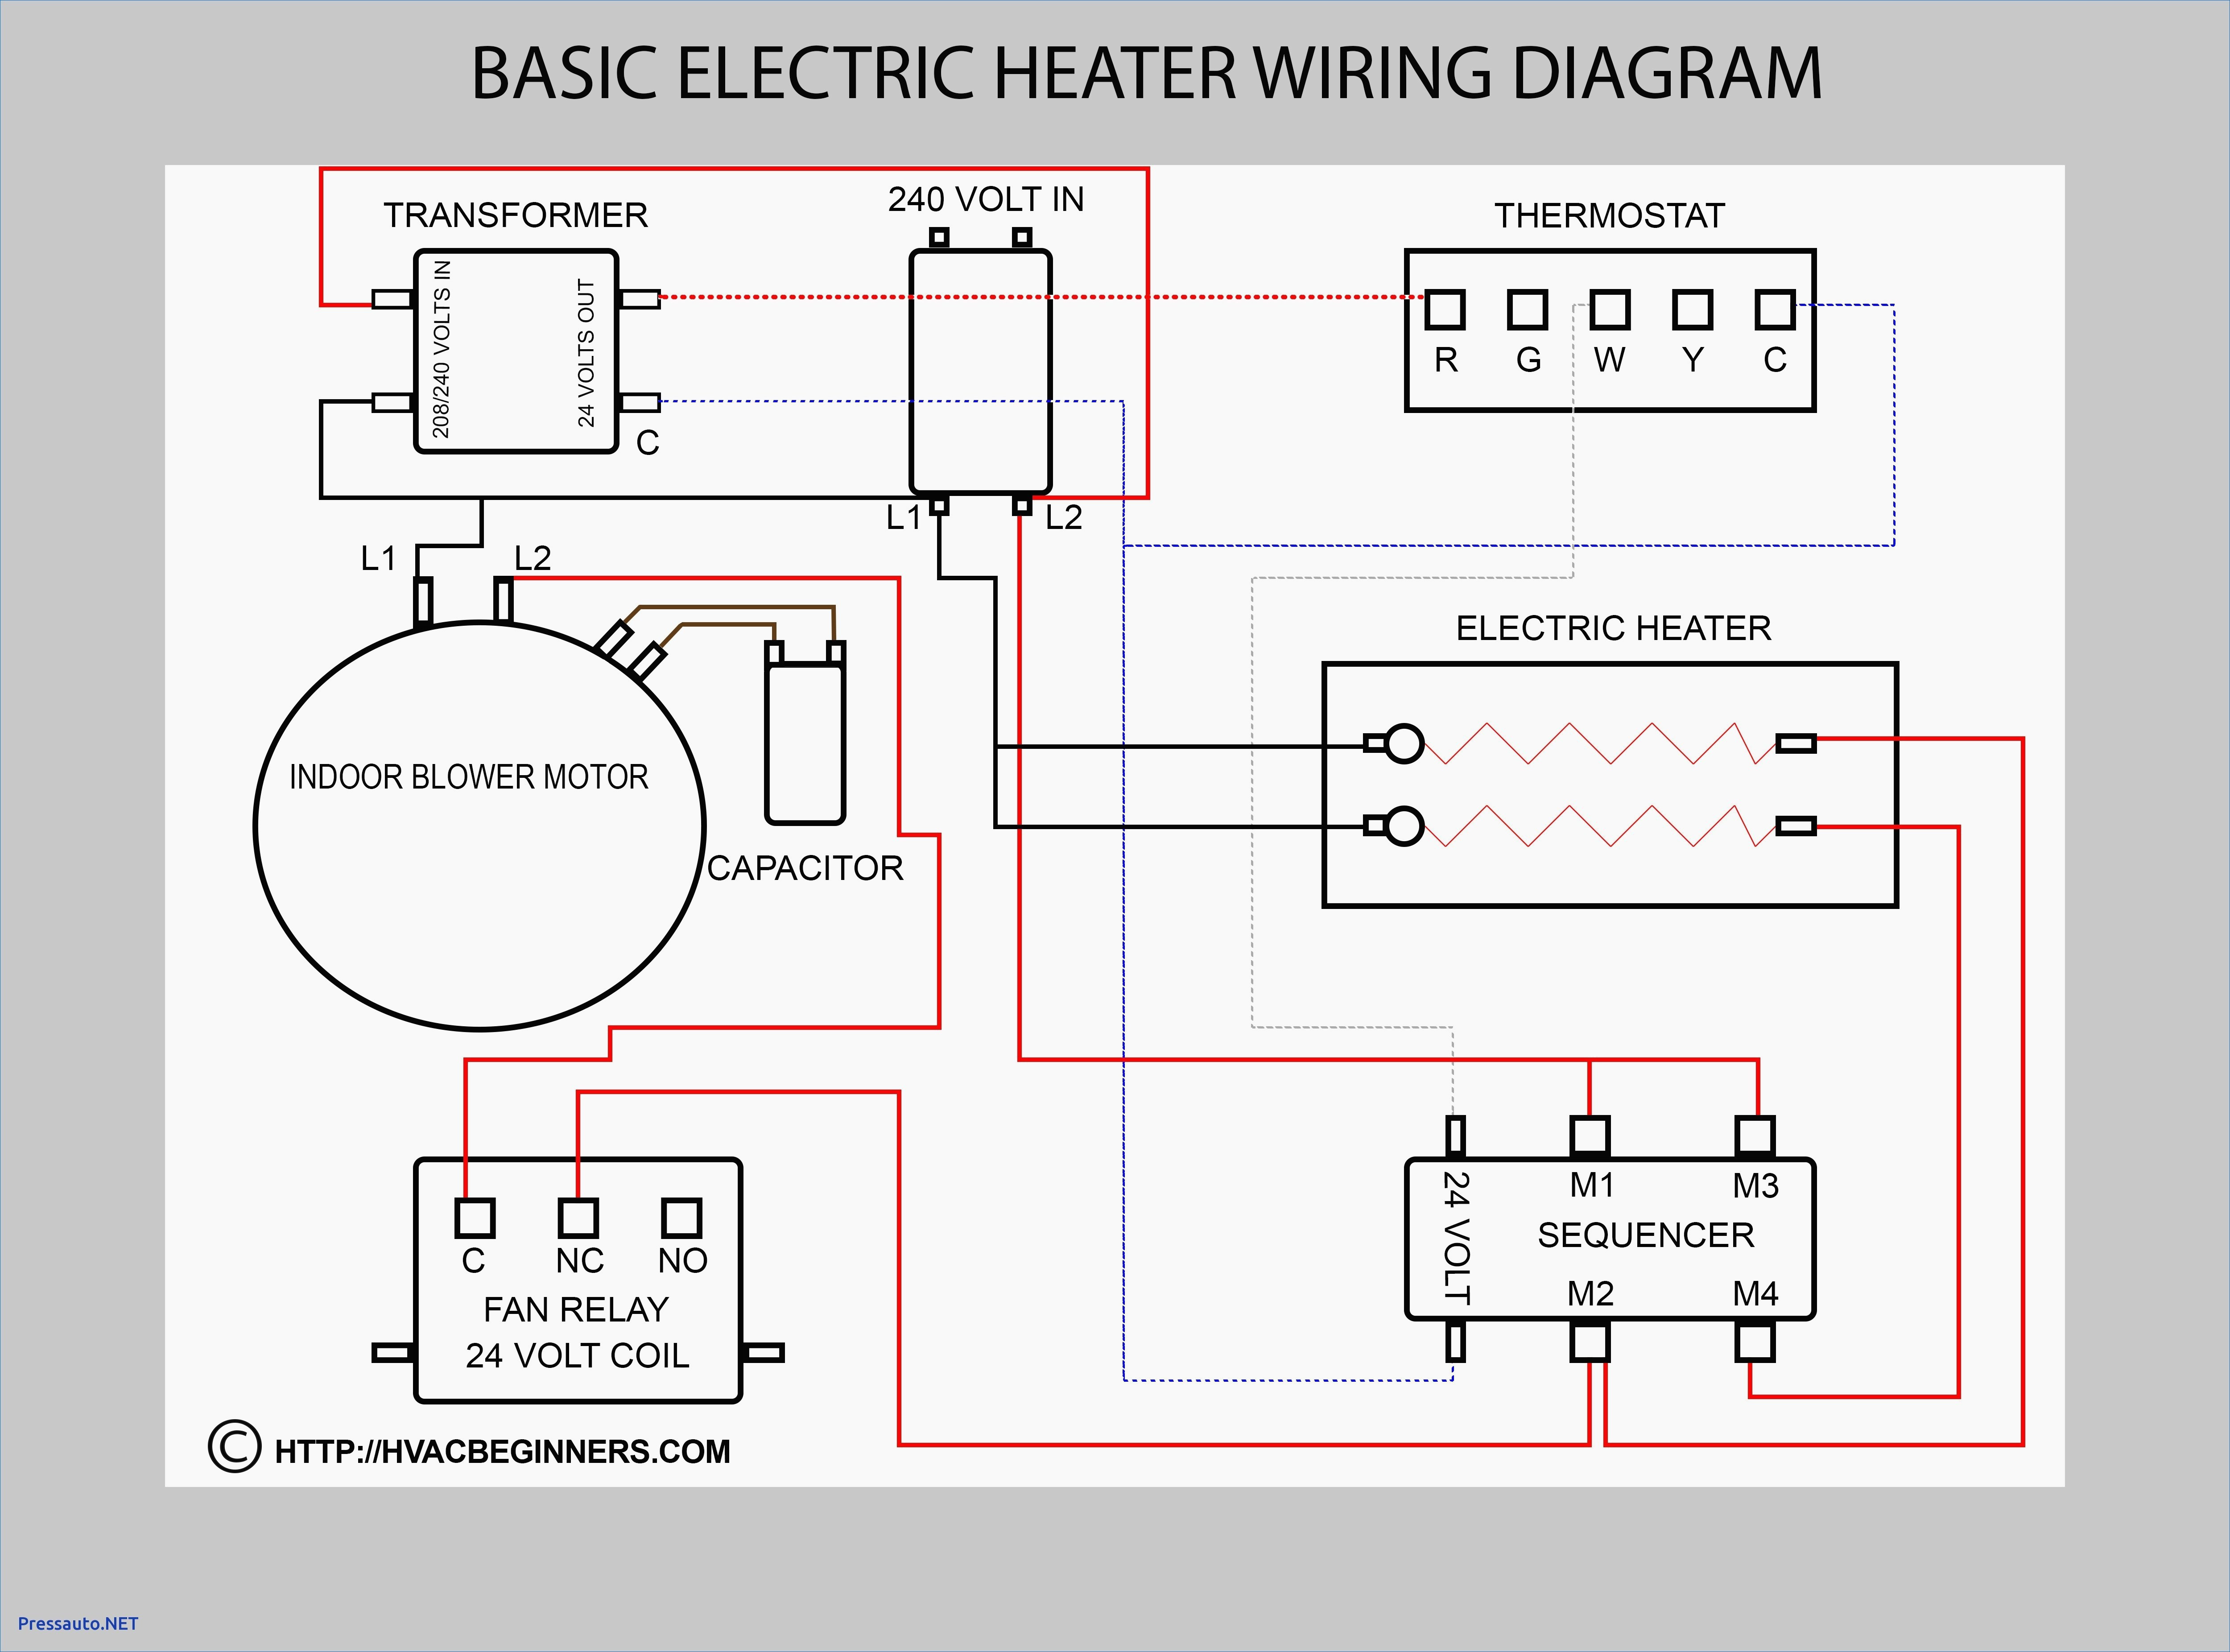 marine wiring diagram software Collection-house thermostat wiring diagram Collection Wiring Diagrams For Central Heating Save Wiring Diagram For Heating DOWNLOAD Wiring Diagram 10-f